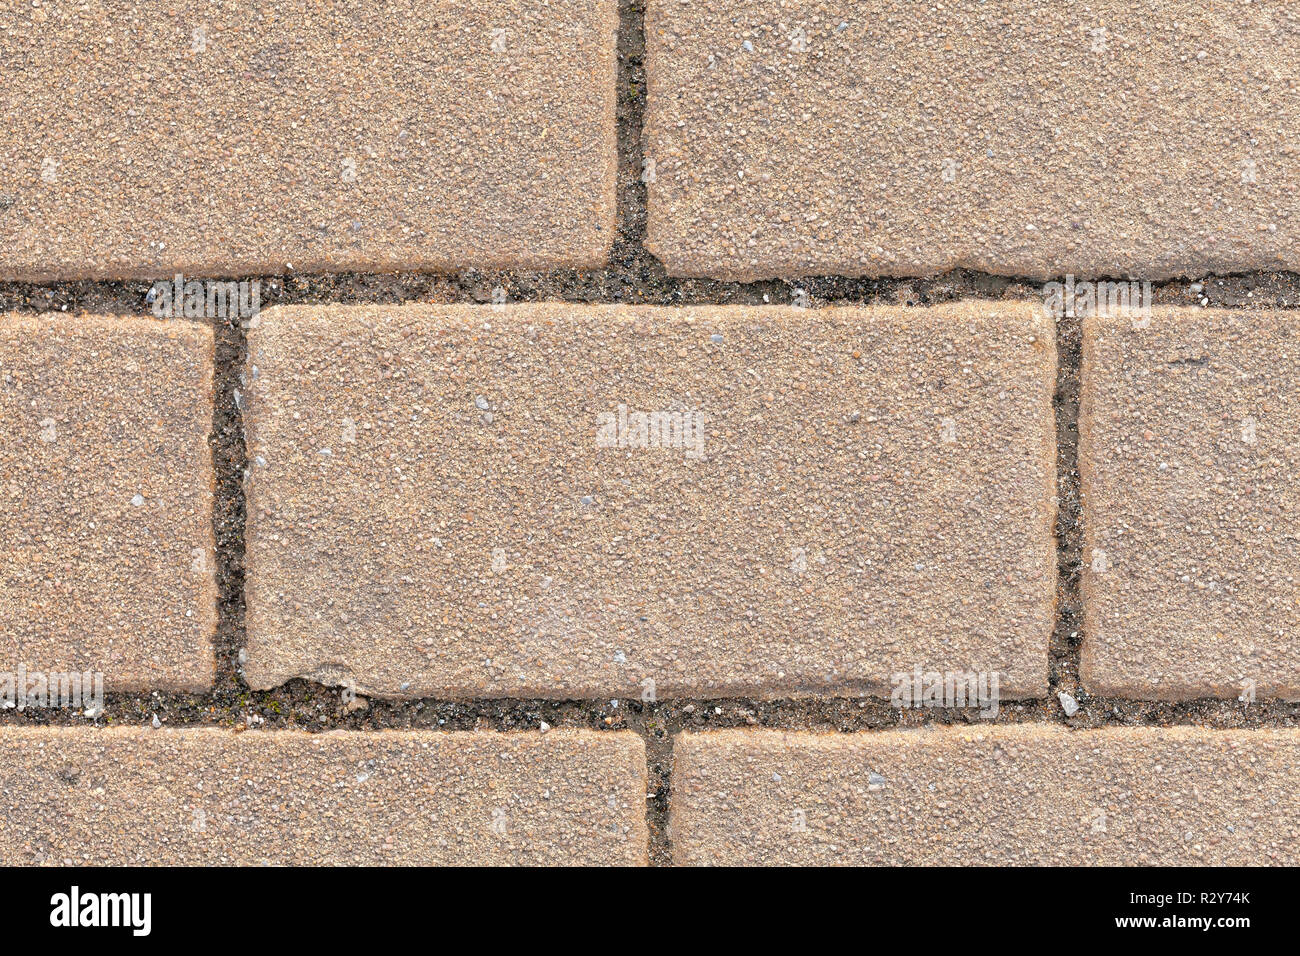 Detail of a paved floor background. - Stock Image